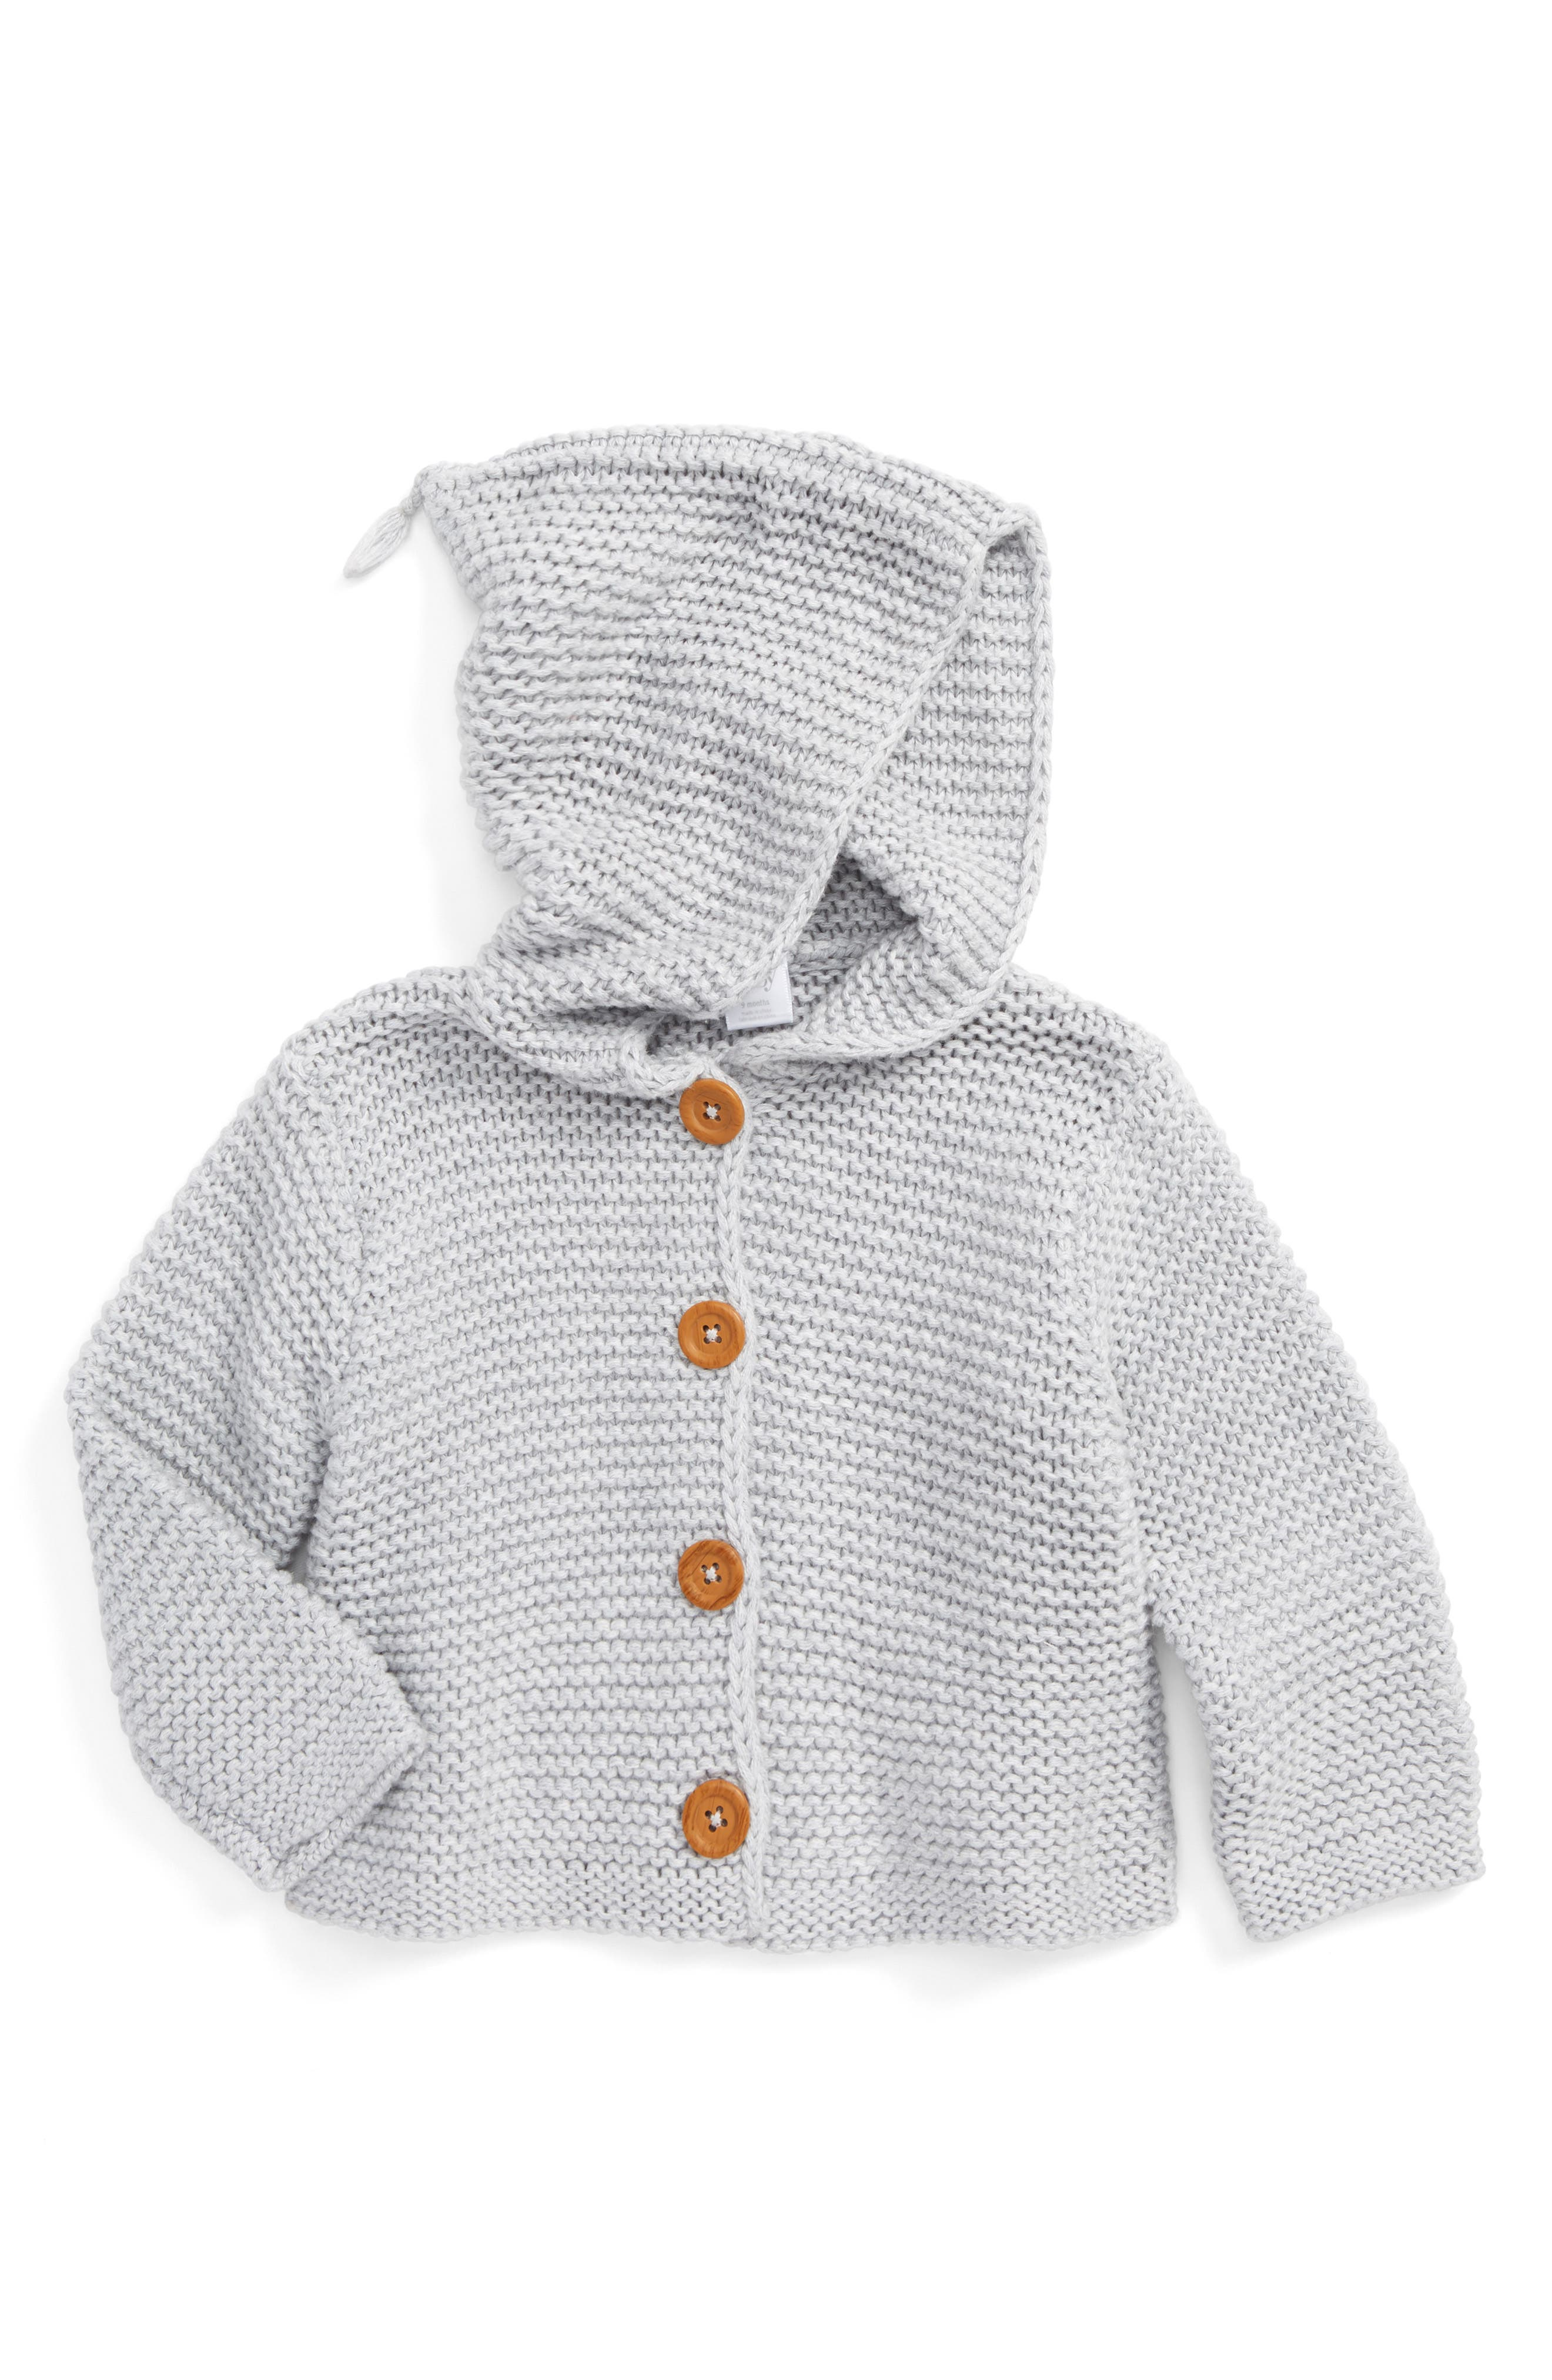 Baby Girl First Impressions Play Pink And Purple Hooded Sweater Size 12 Months Sweaters Girls' Clothing (newborn-5t)